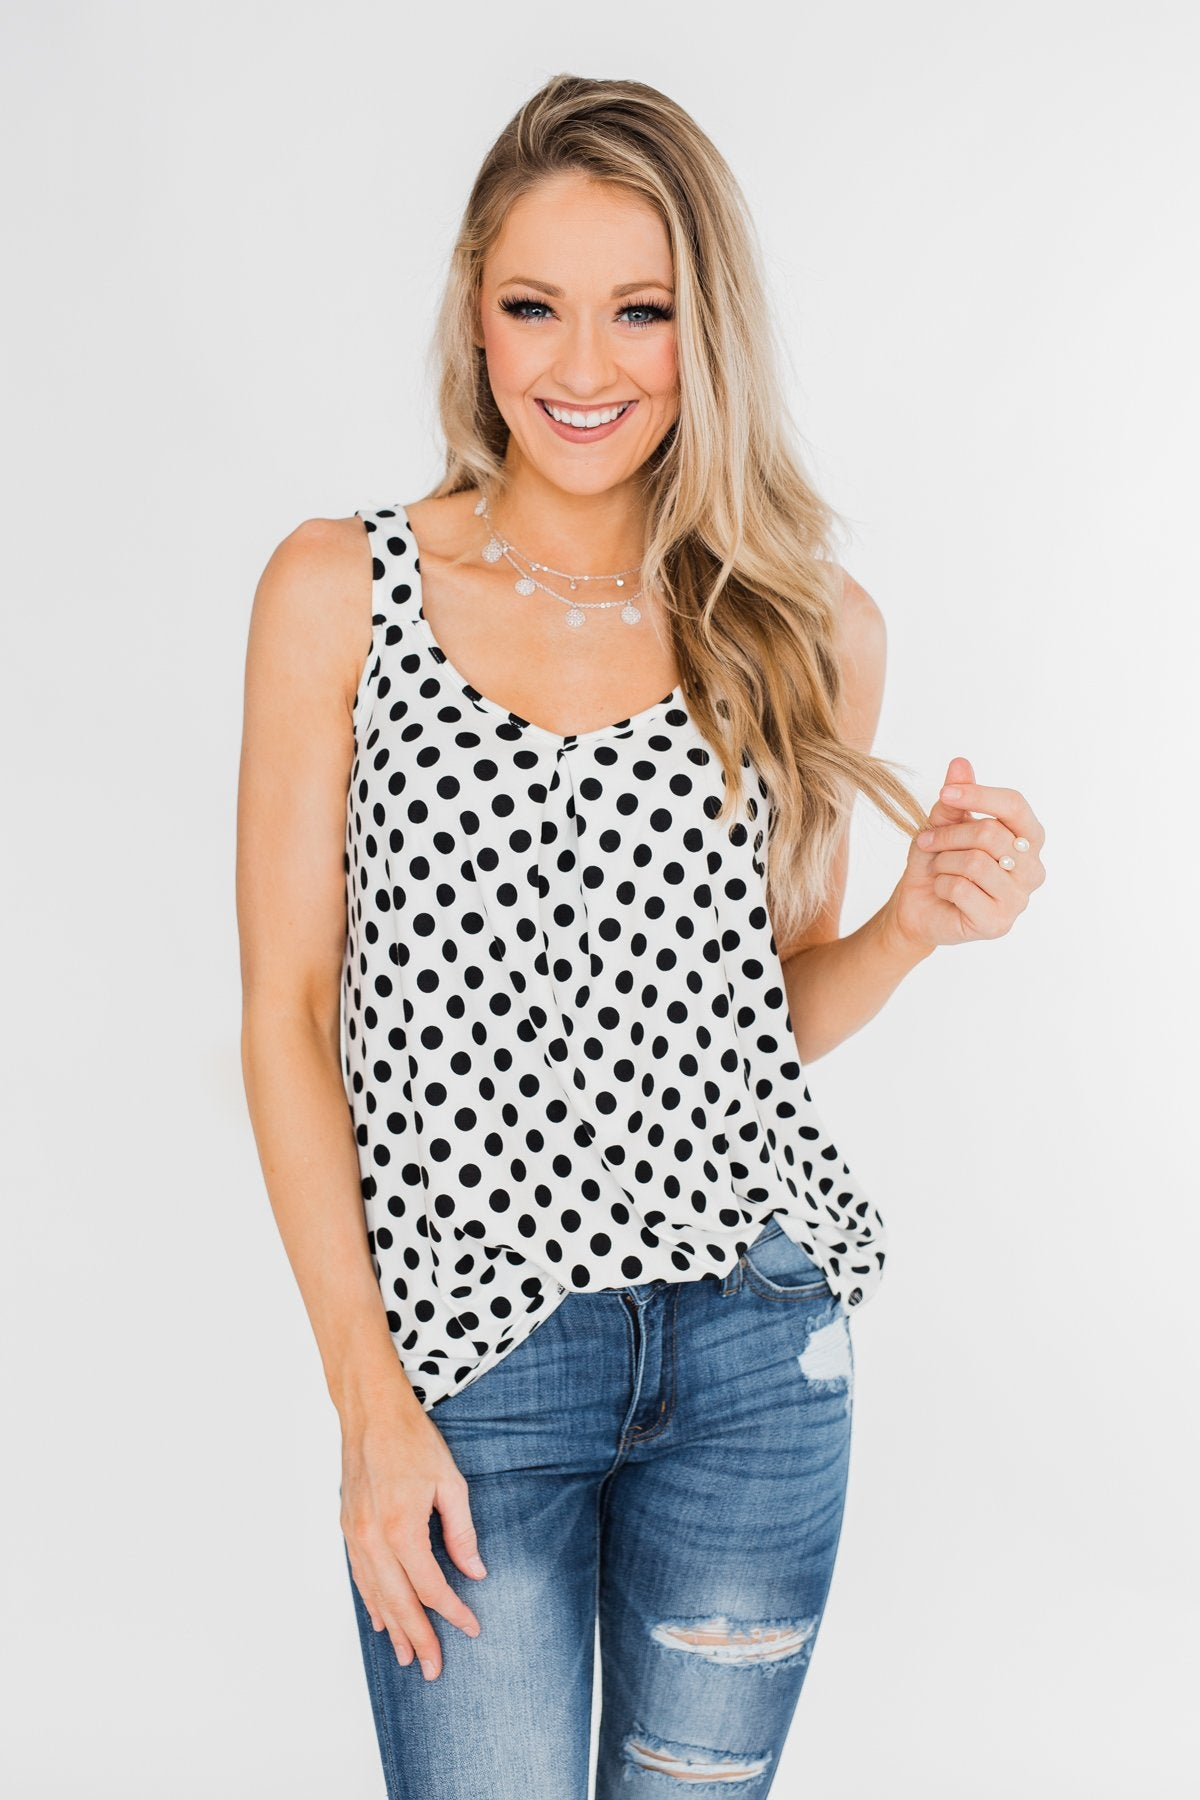 Black & White Polka Dot Tank Top